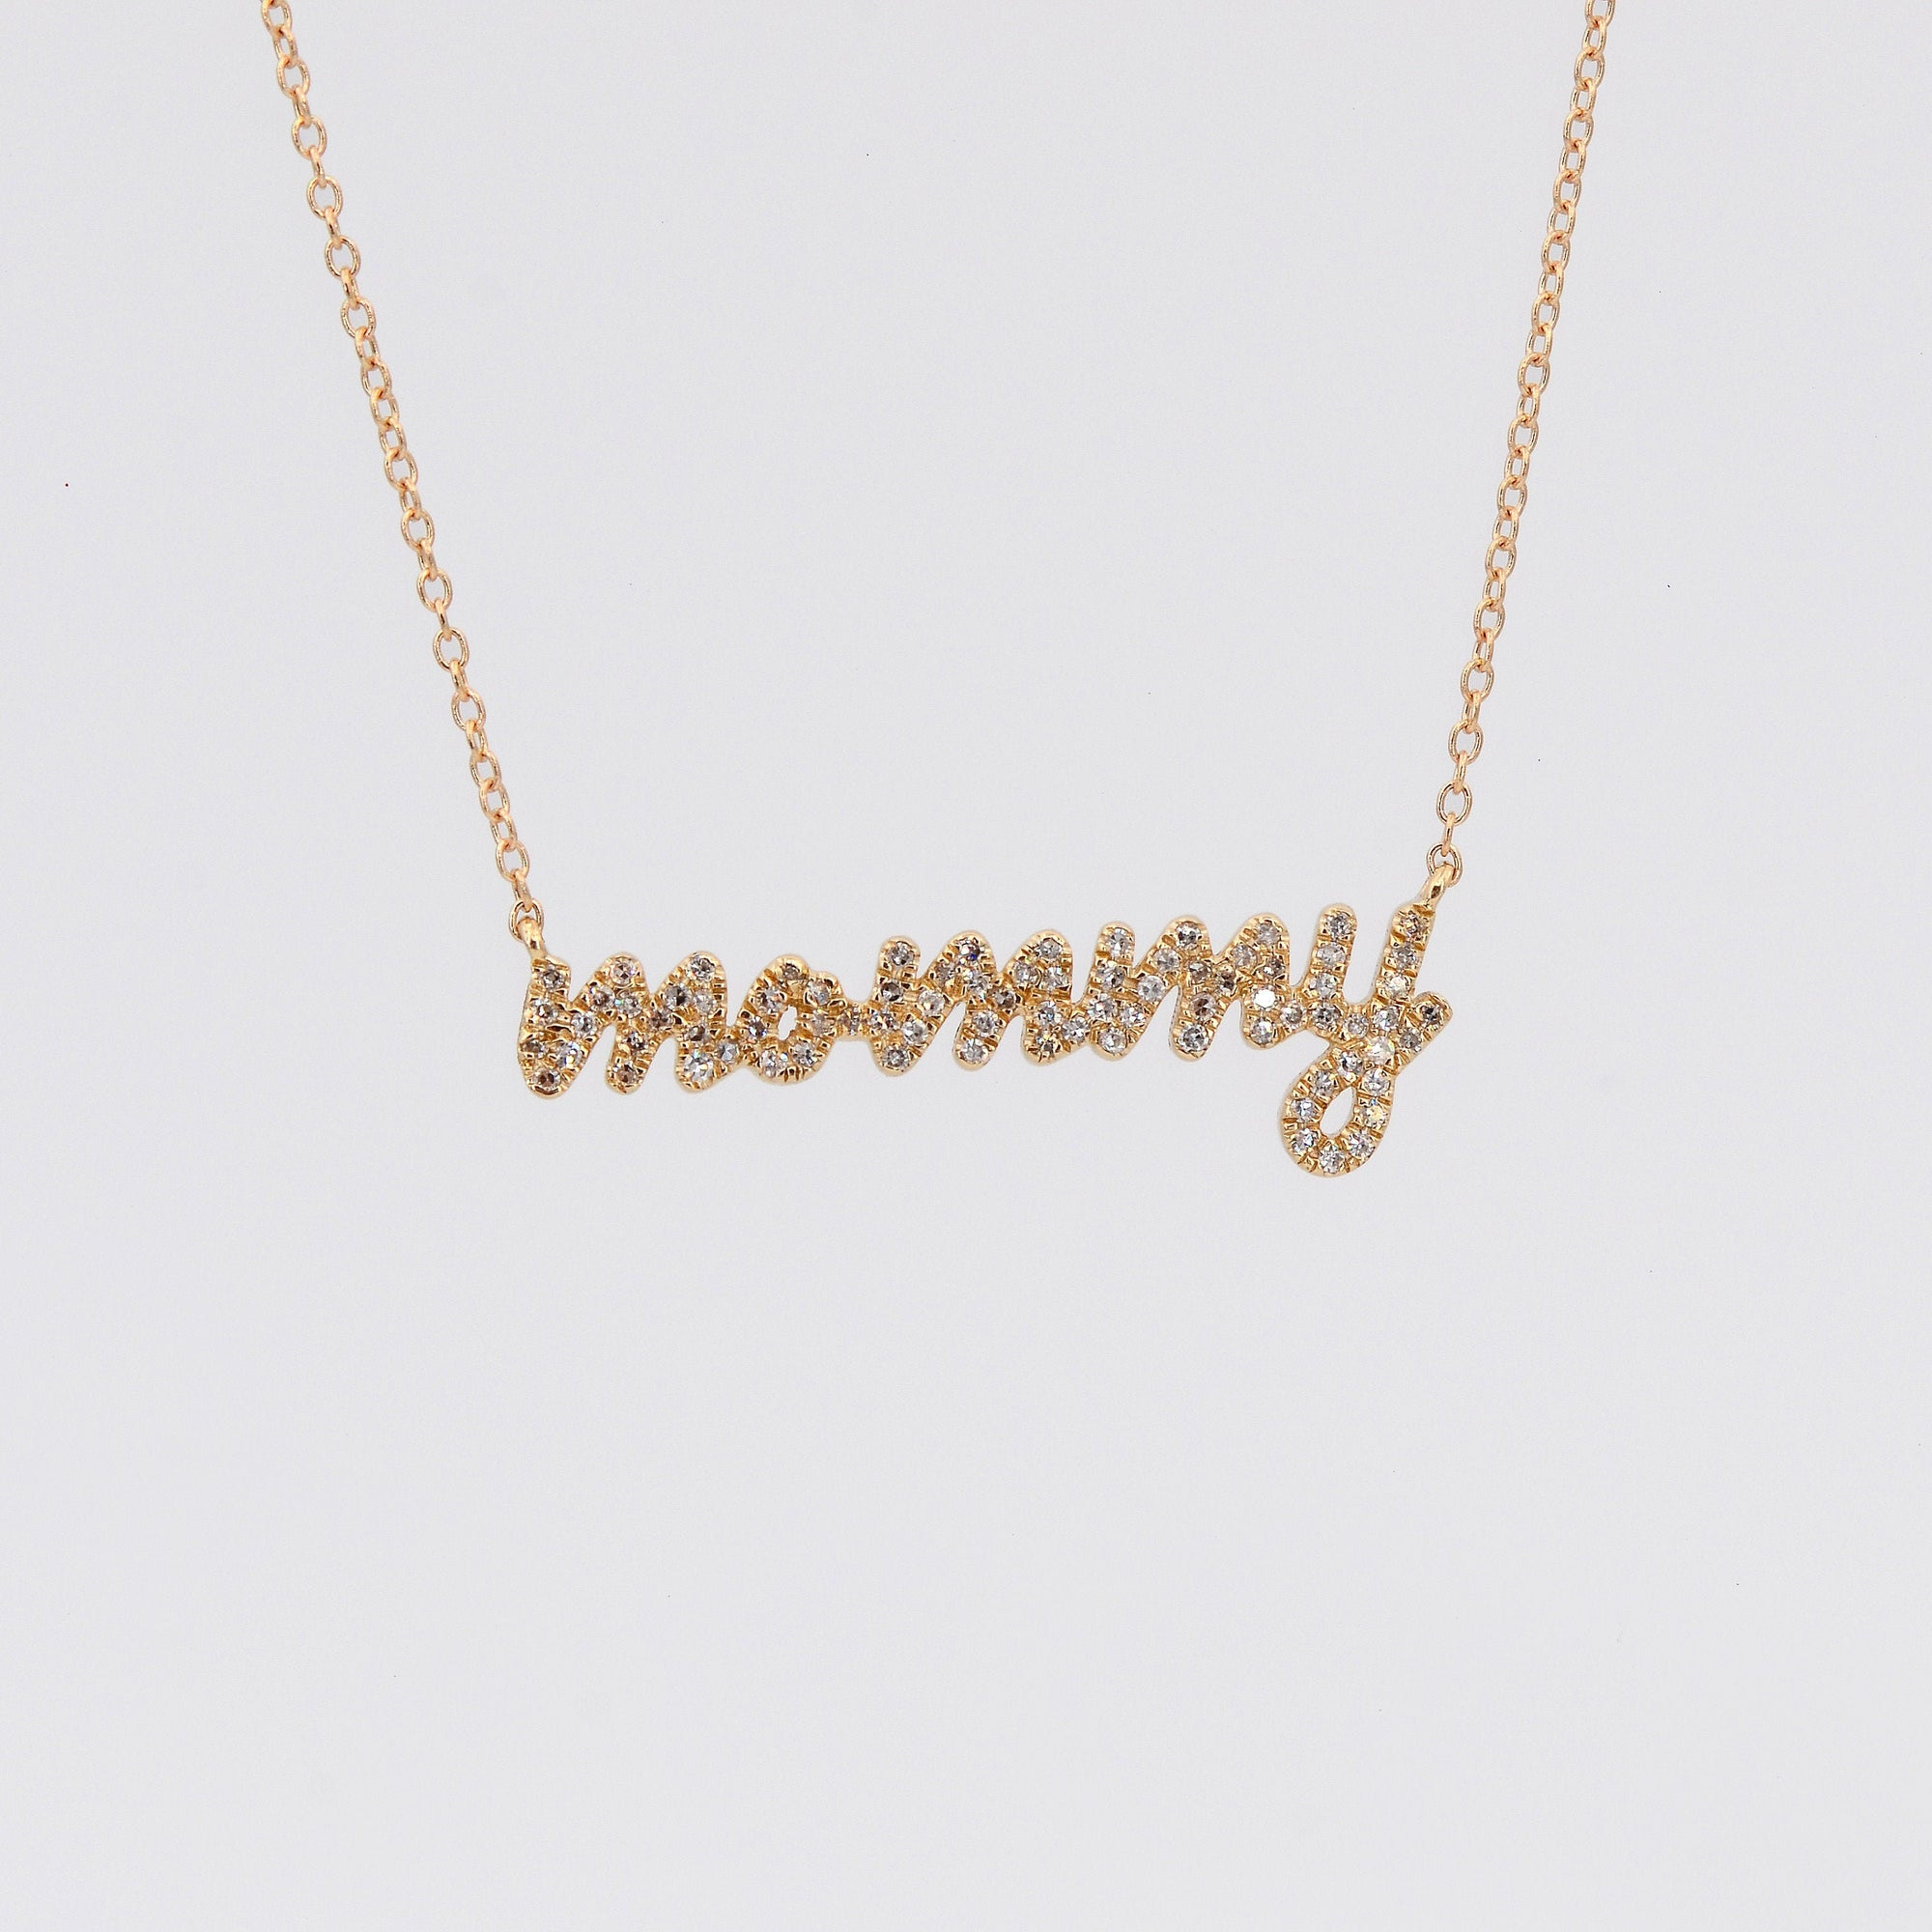 Mommy necklace, Diamond mommy necklace,mommy mama necklace, Dainty Nameplate, 14k Necklace, Custom Name Necklace Gift, Gift for mother's